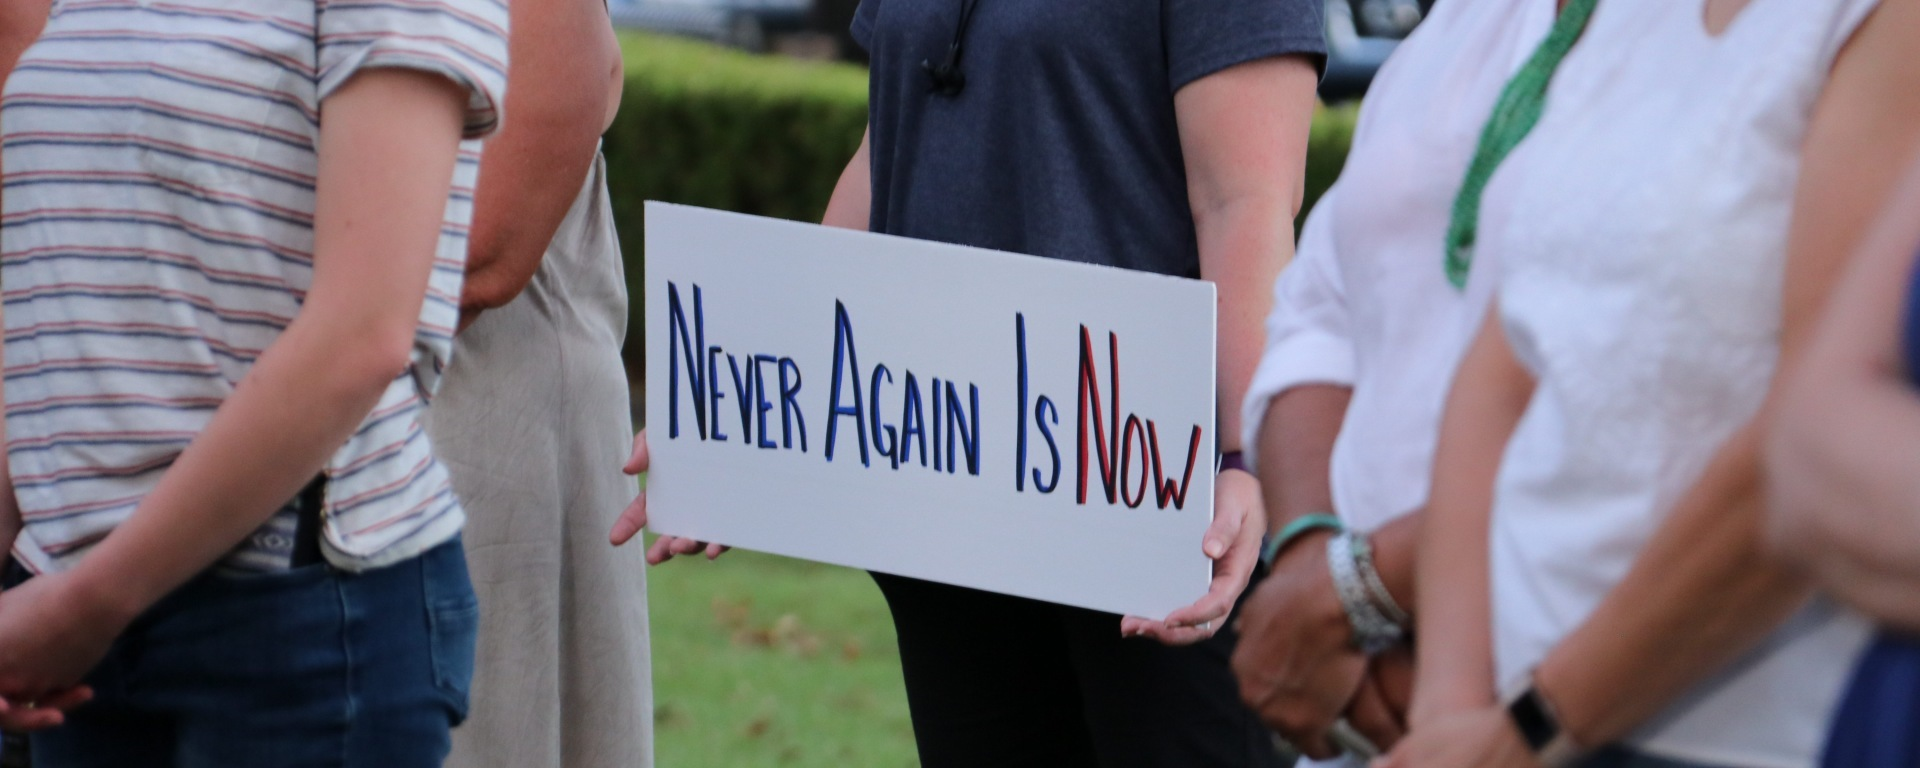 "A lady in a blue shirt holds a sign saying ""never again is now."""